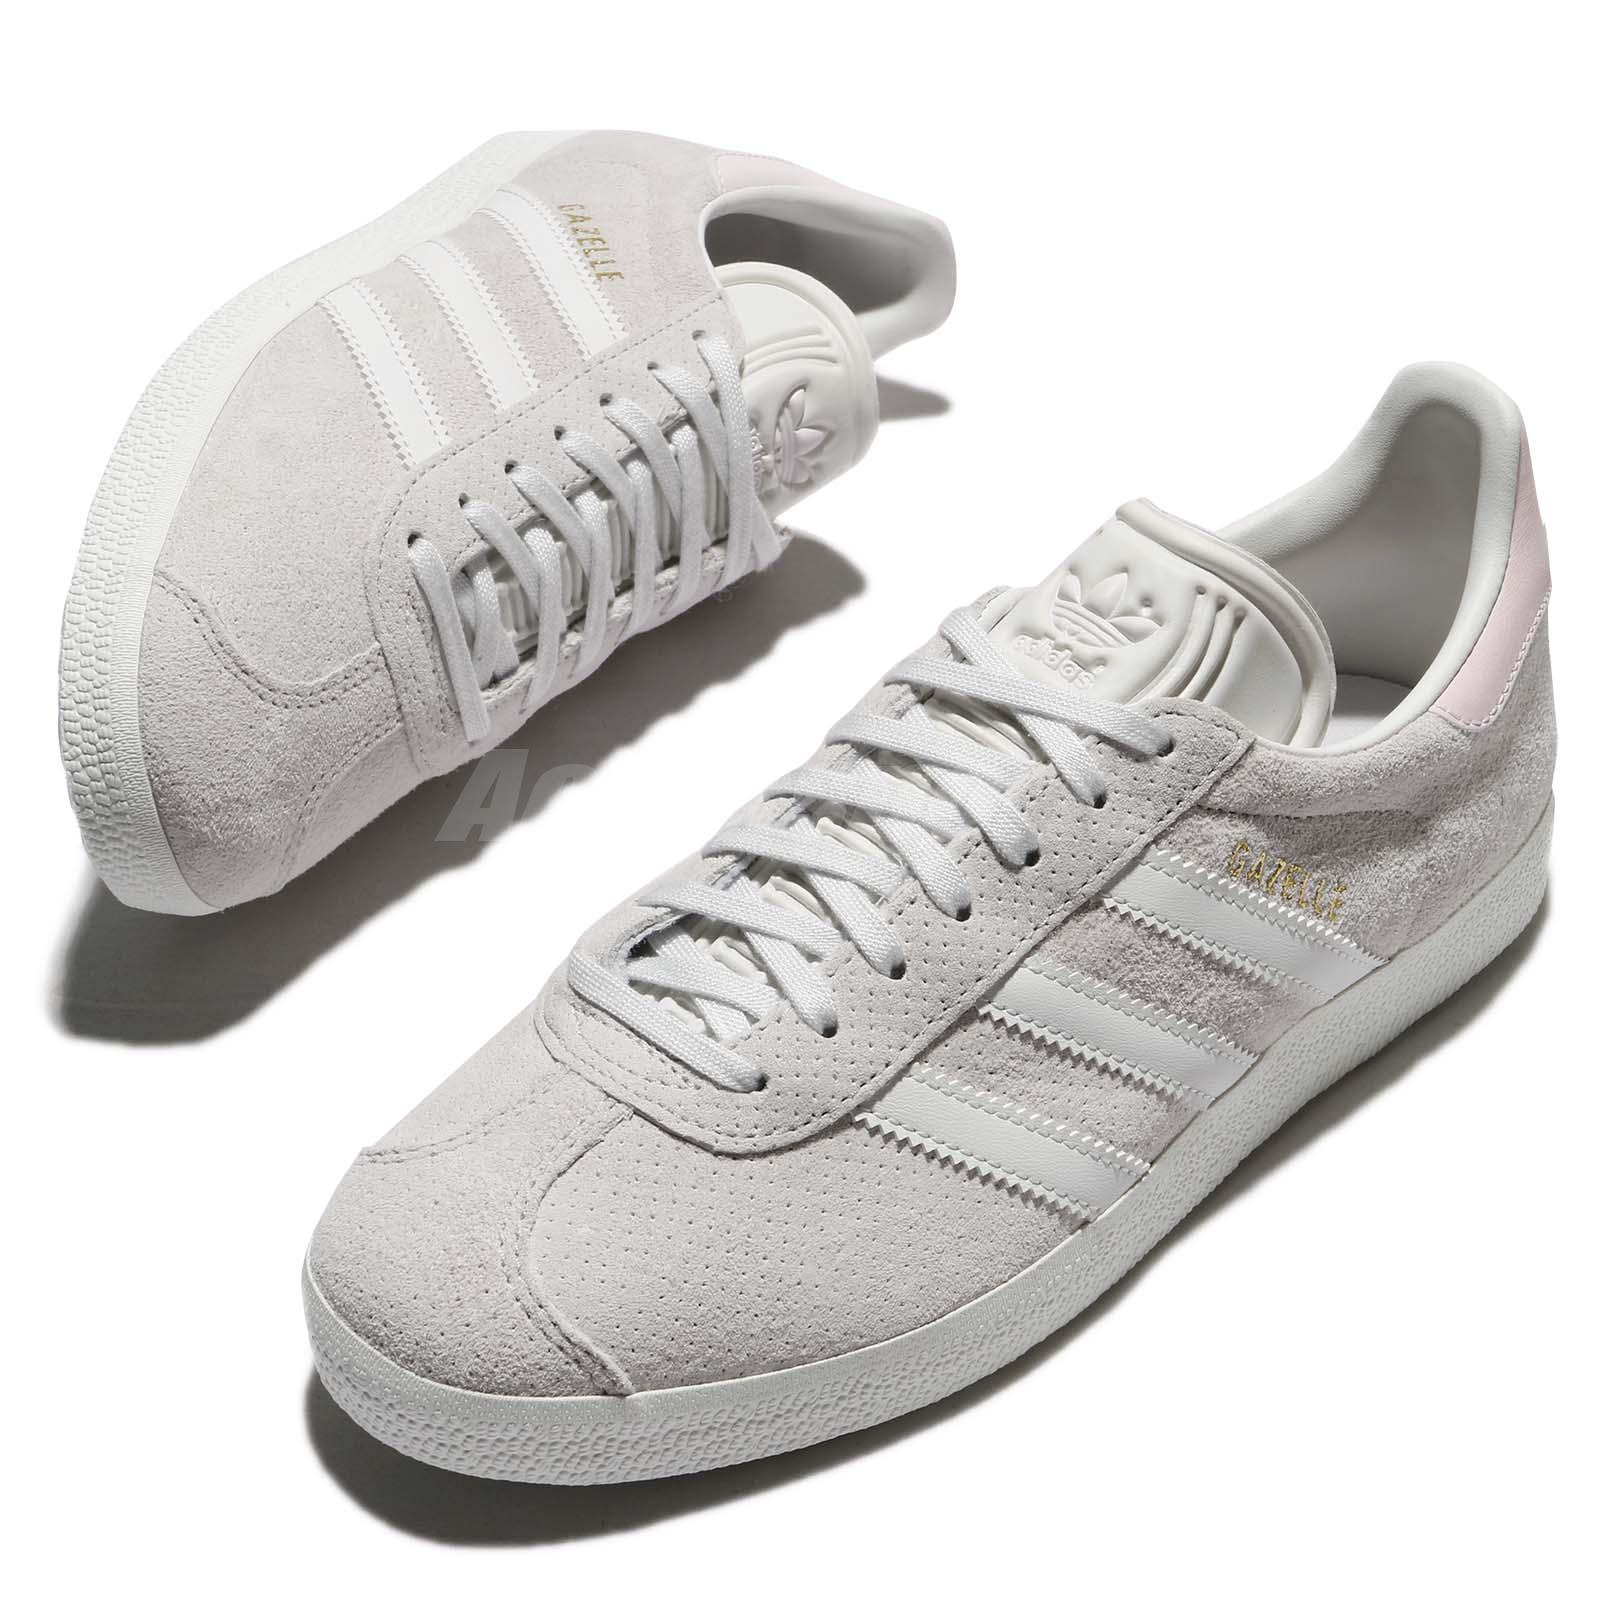 Adidas CQ2183 Adidas Gazelle Women's Originals Shoes Vintage